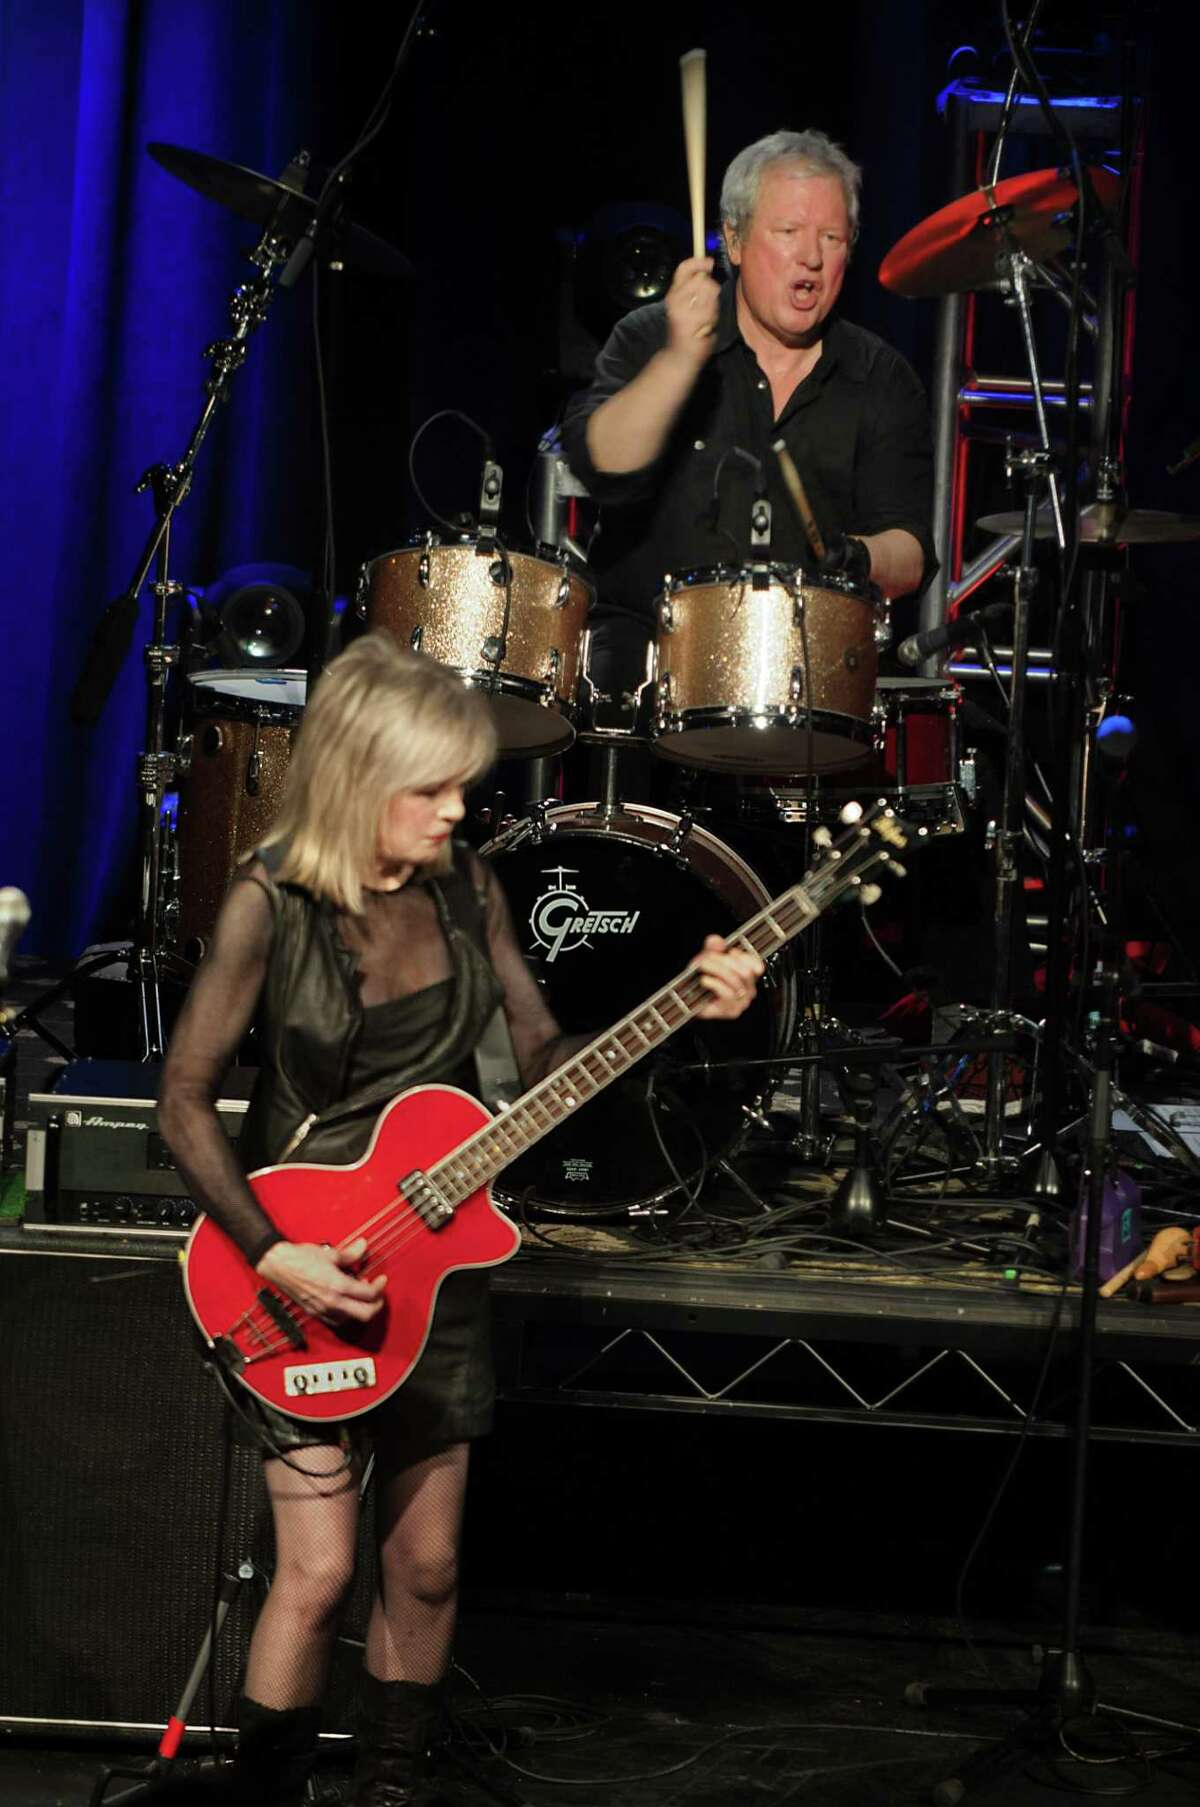 Founding members of the Talking Heads and Tom Tom Club, Chris Frantz and Tina Weymouth, will host a new Emerging Artists Series at the Fairfield Theatre Company.